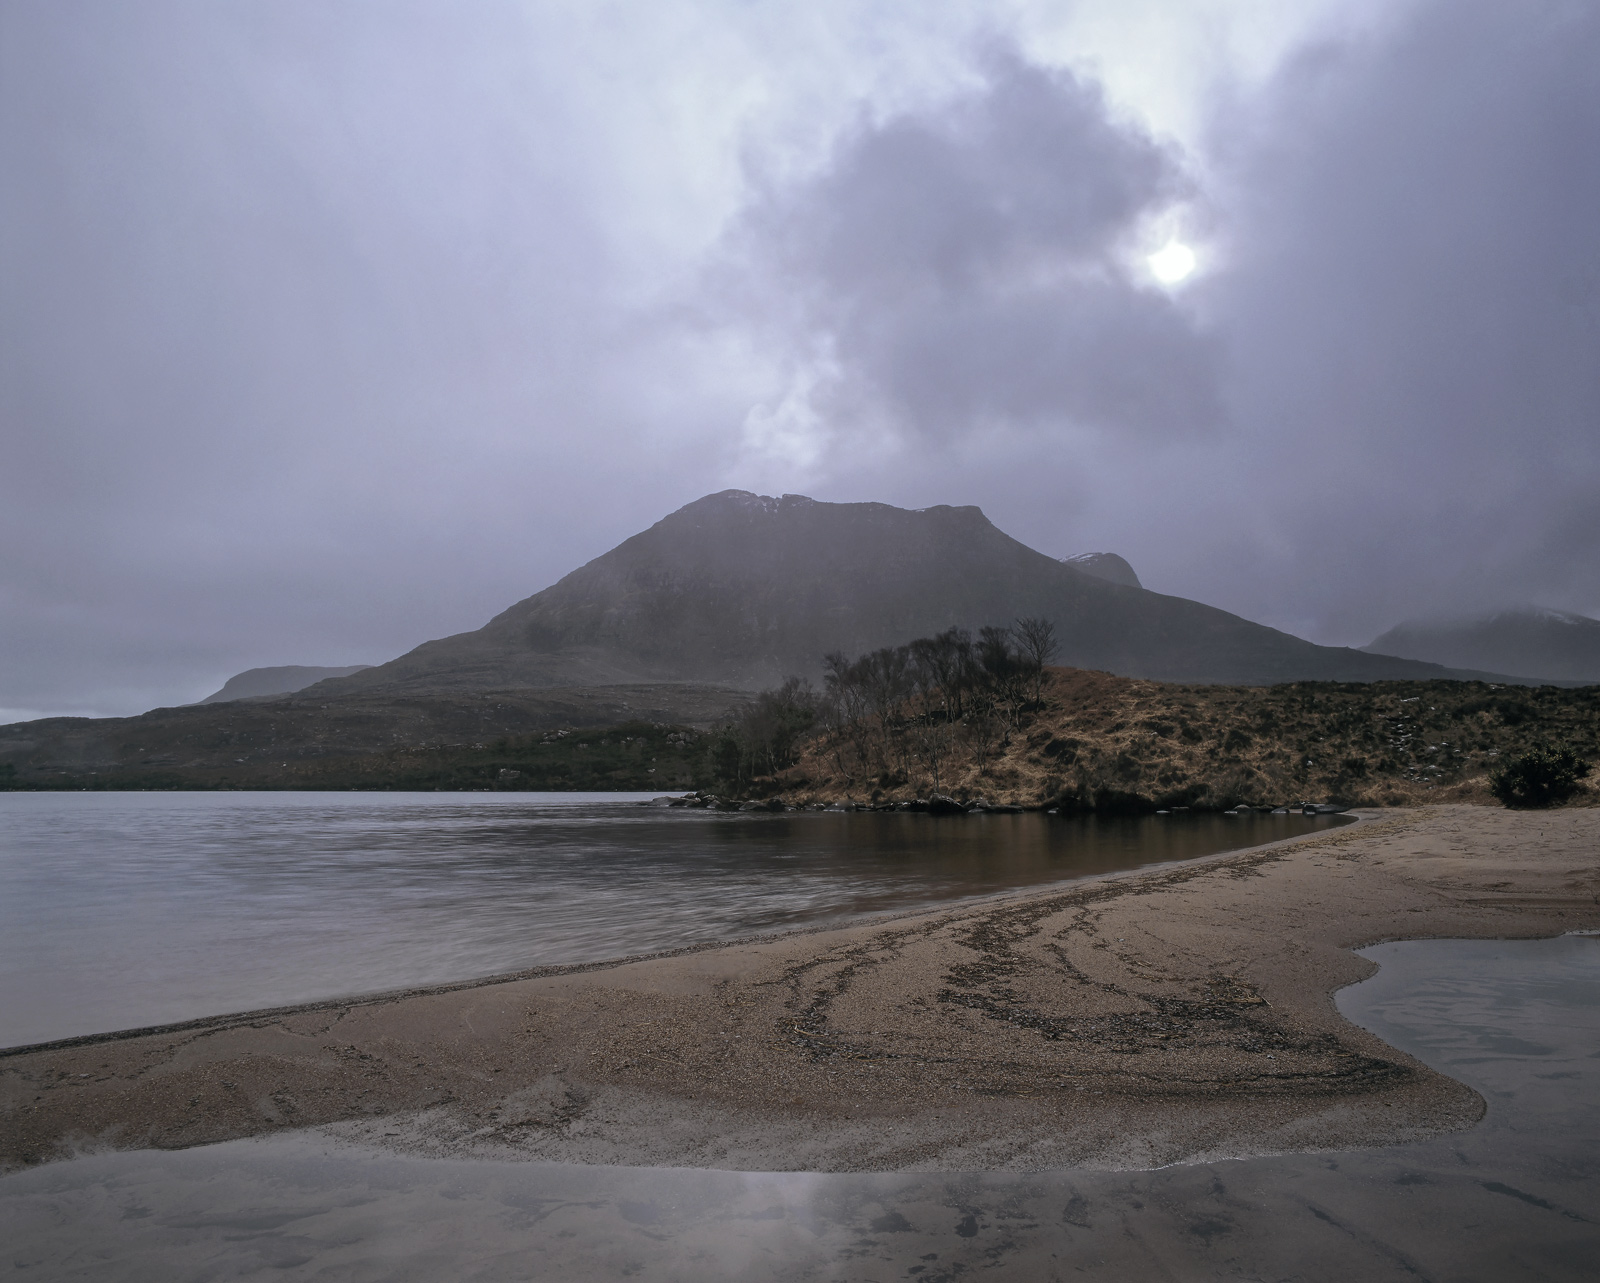 Clearing Shower Lurgainn, Loch Lurgainn, Inverpolly, Scotland, dleet, hail, moody, enchanting, sandy, cove, showers, photo